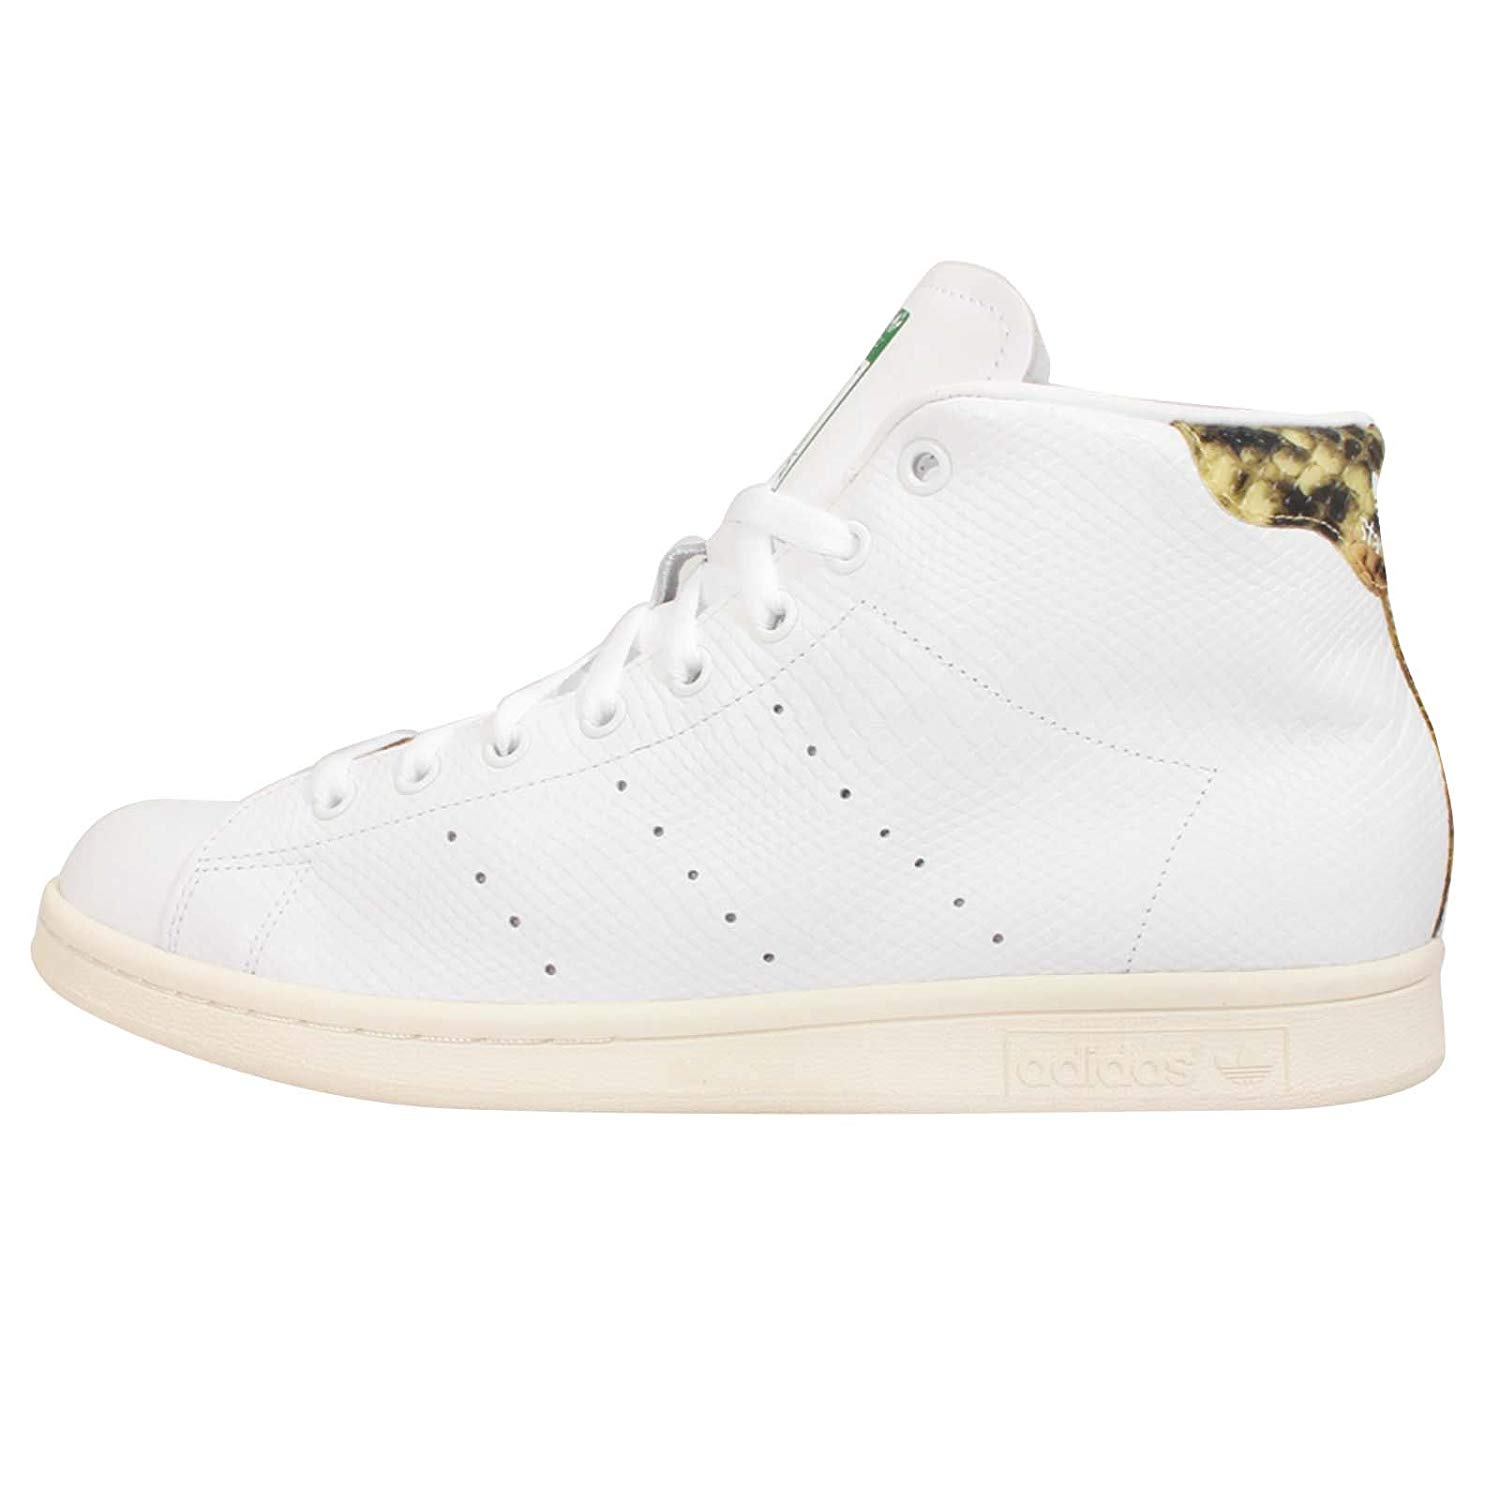 meilleures baskets b1d54 b96d3 Details about Adidas Originals Stan Smith mid Sneaker Special Edition Snake  S77451